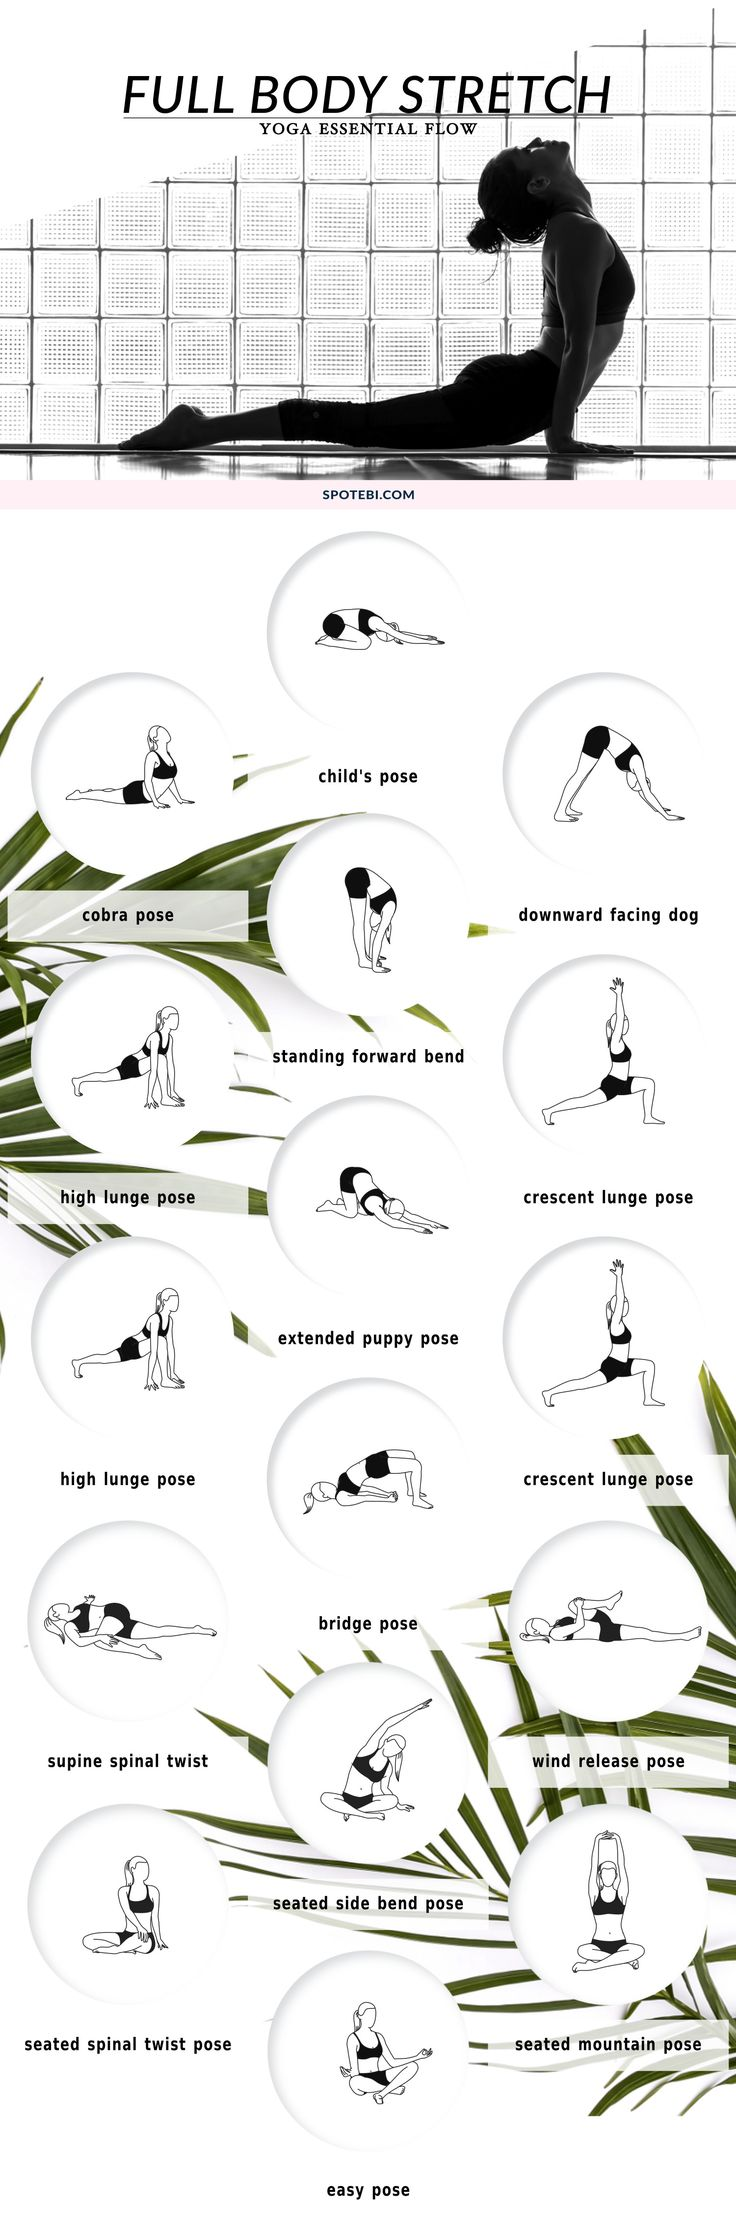 Improve your range of motion, increase circulation, and calm your mind with this 10 minute full body stretching flow. The following yoga poses target your tightest muscles, ensuring an amazing total body stretch! https://www.spotebi.com/yoga-sequences/full-body-stretch/